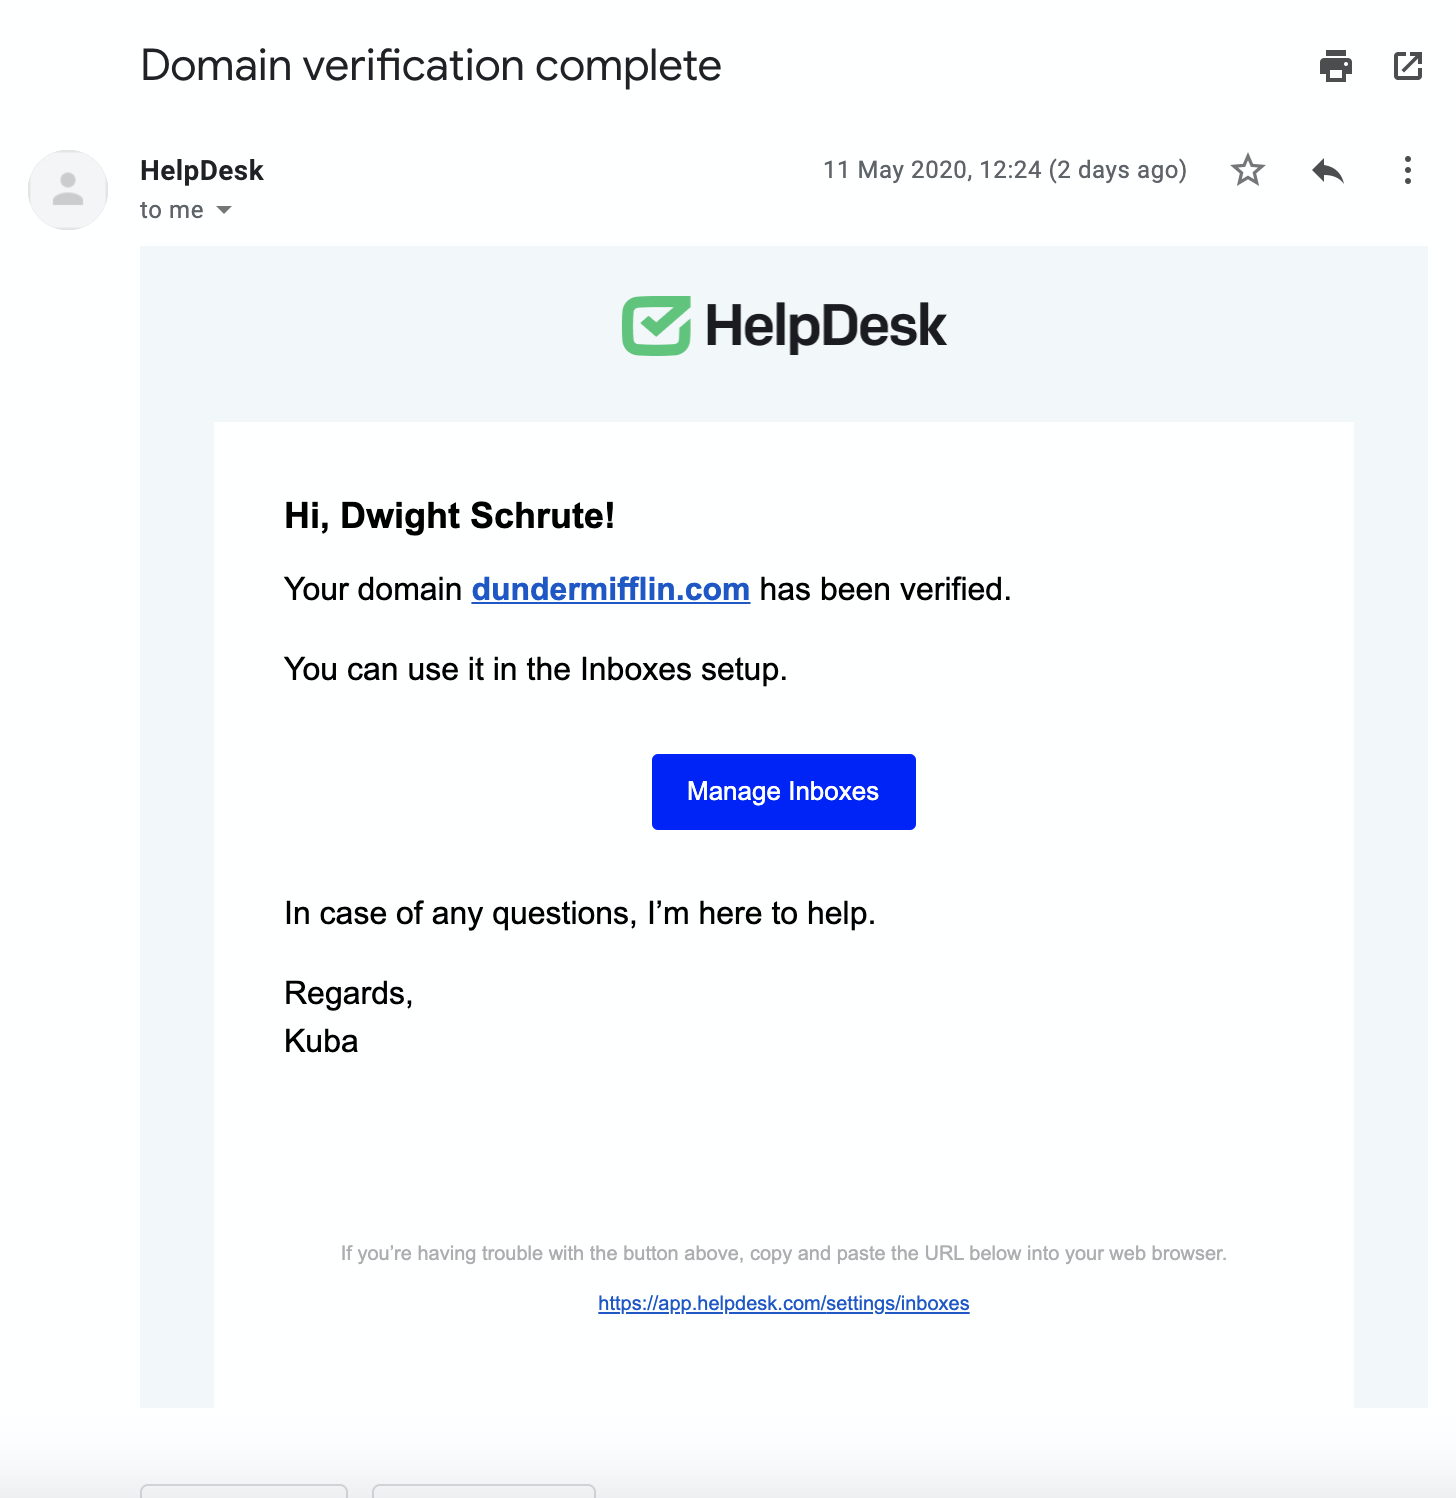 Email confirmation of verifying the domain